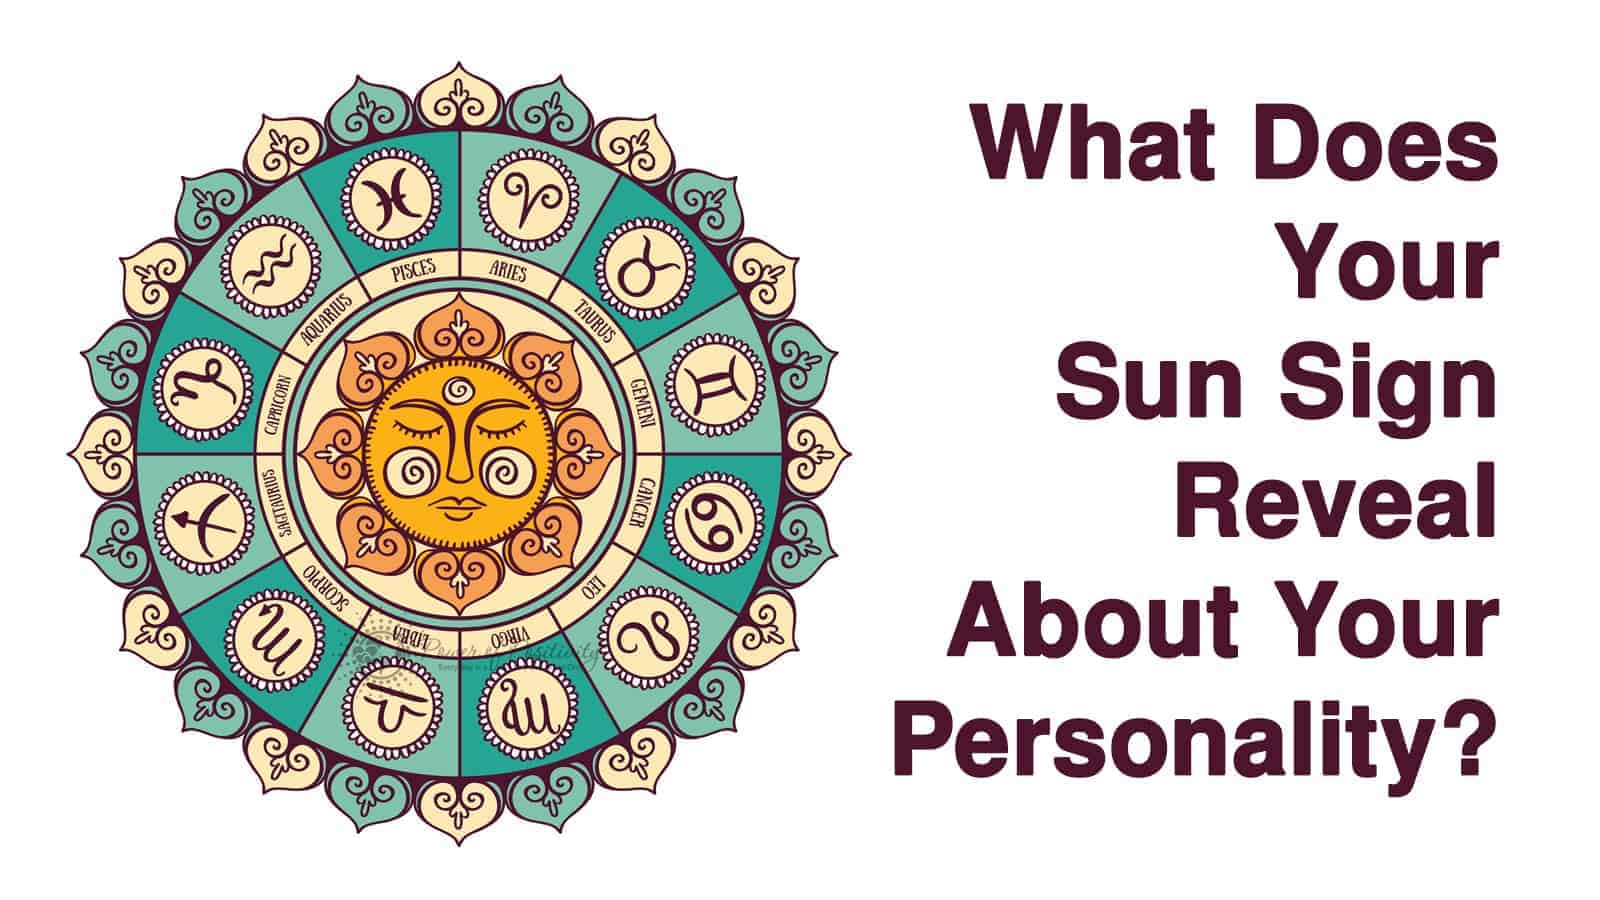 what does your sun sign reveal about your personality